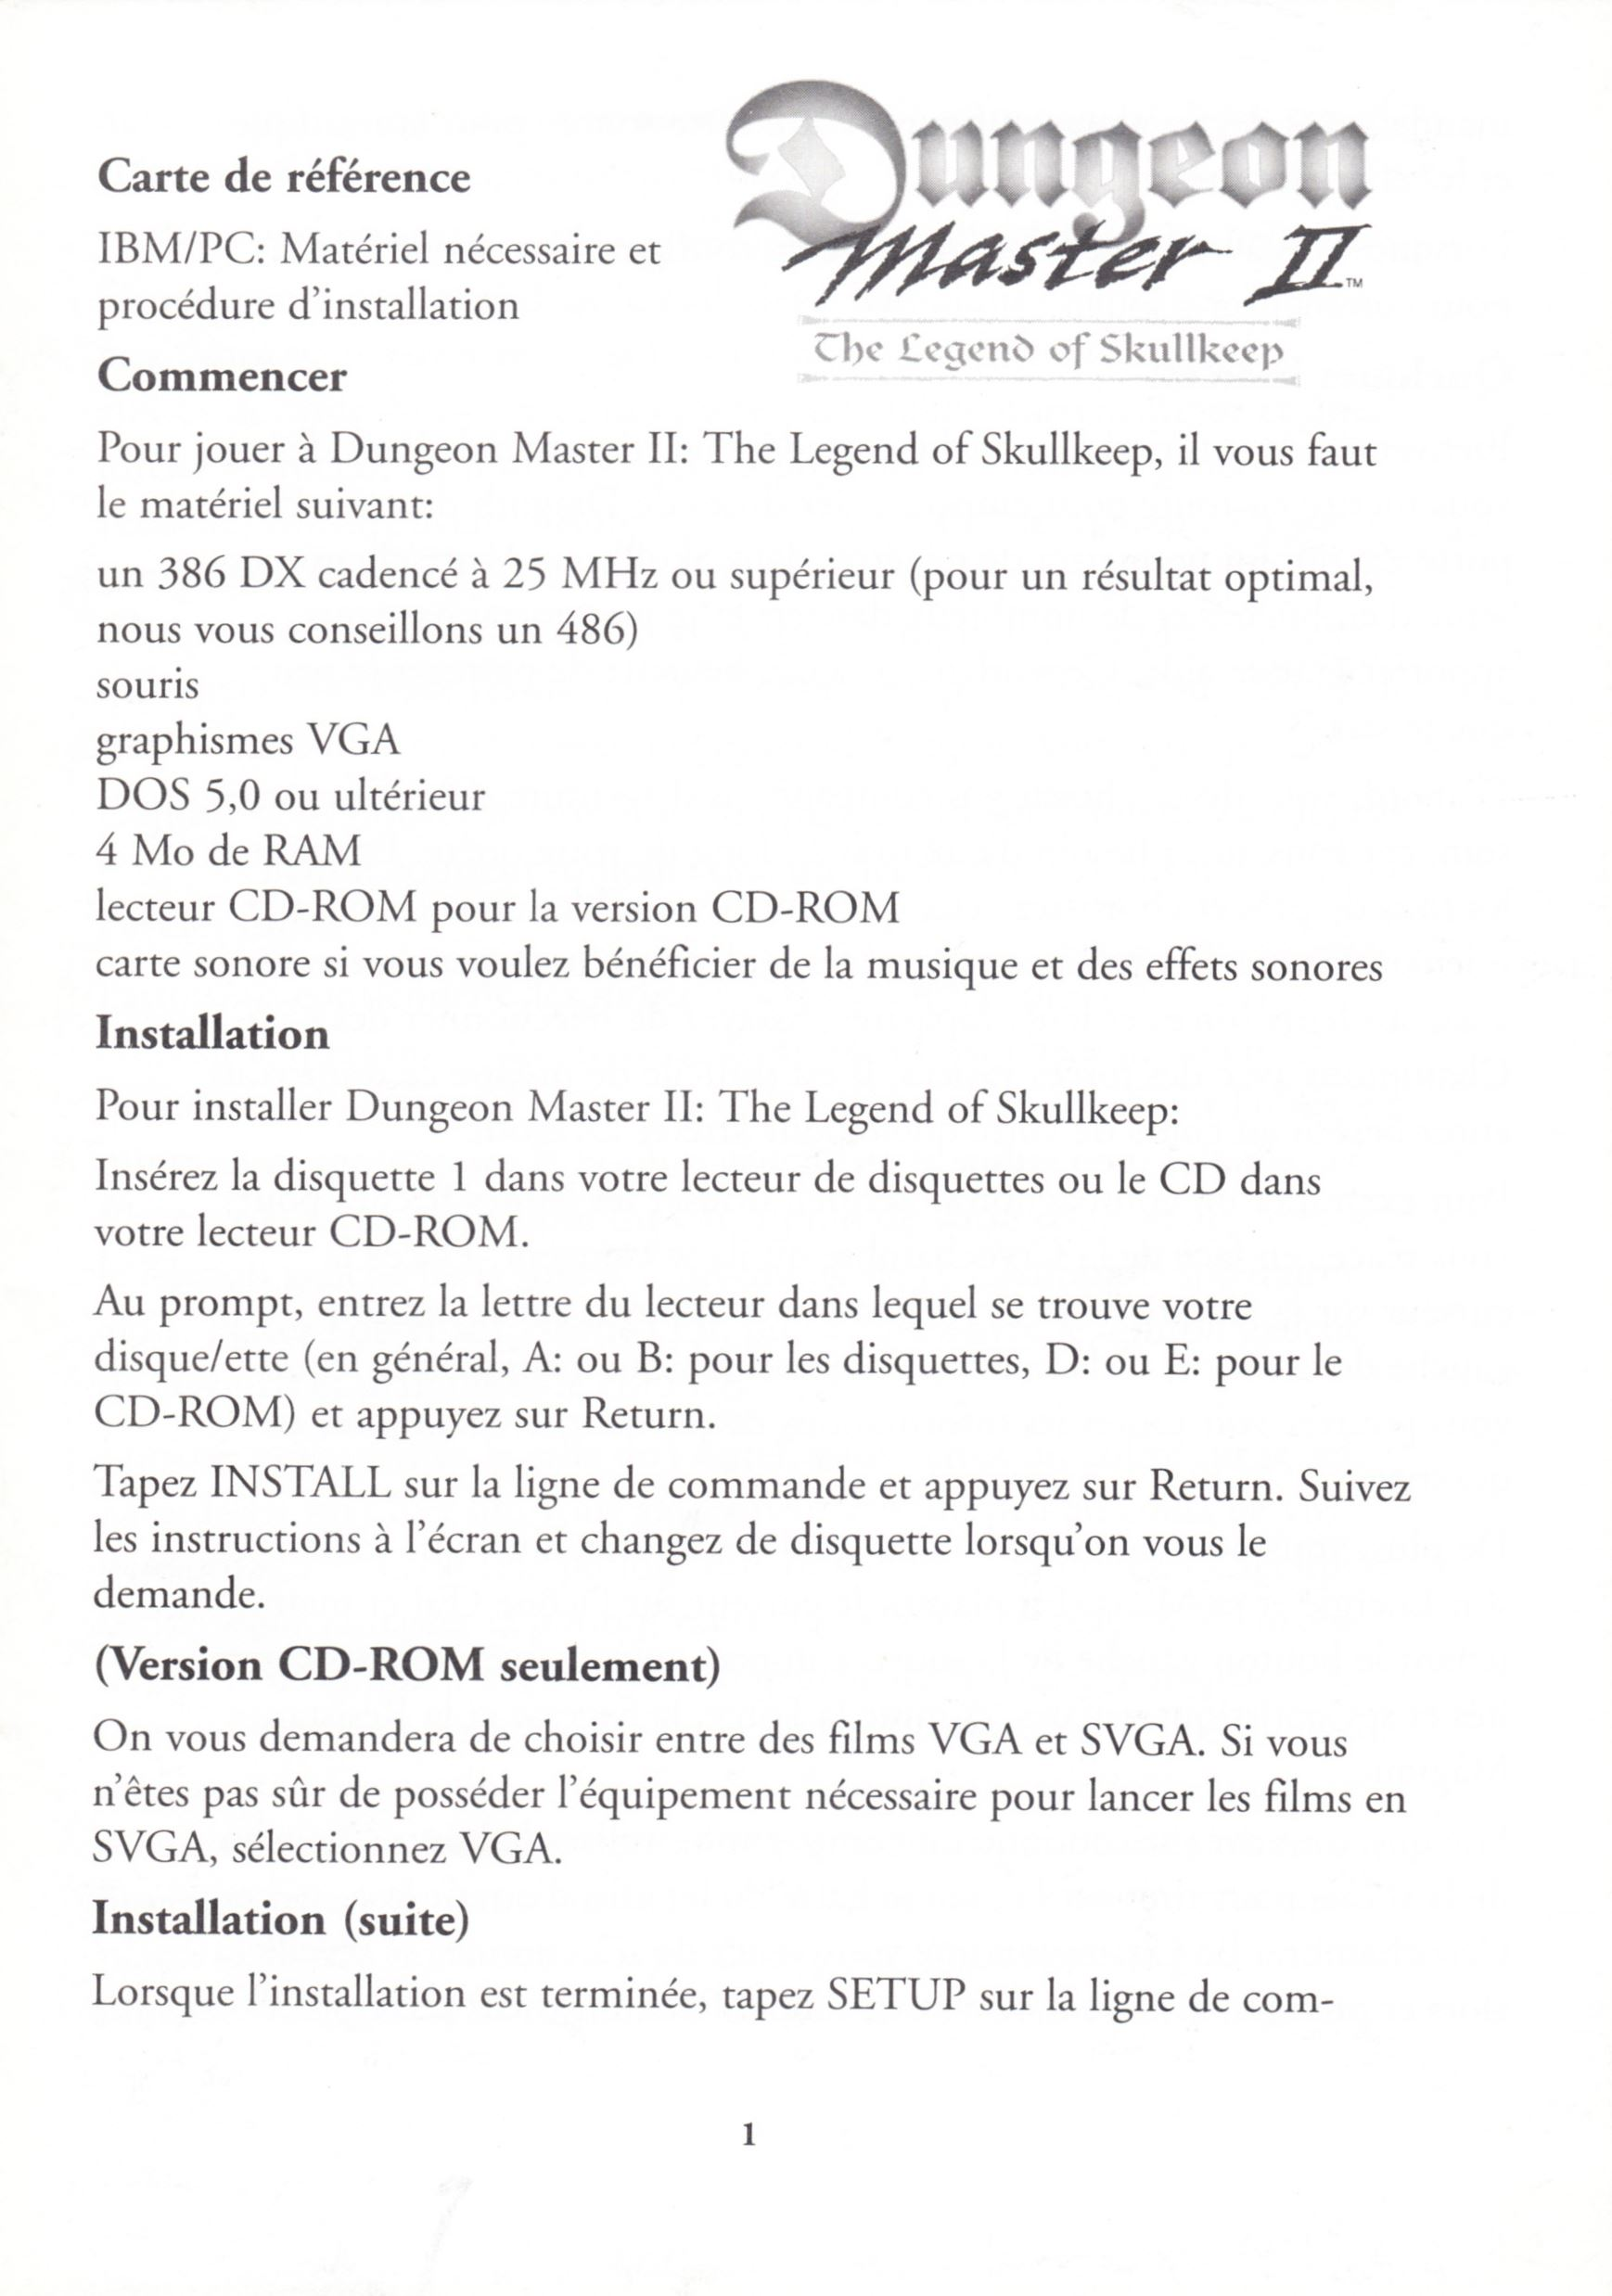 Game - Dungeon Master II - UK - PC - Floppy Version - Reference Card - Page 001 - Scan